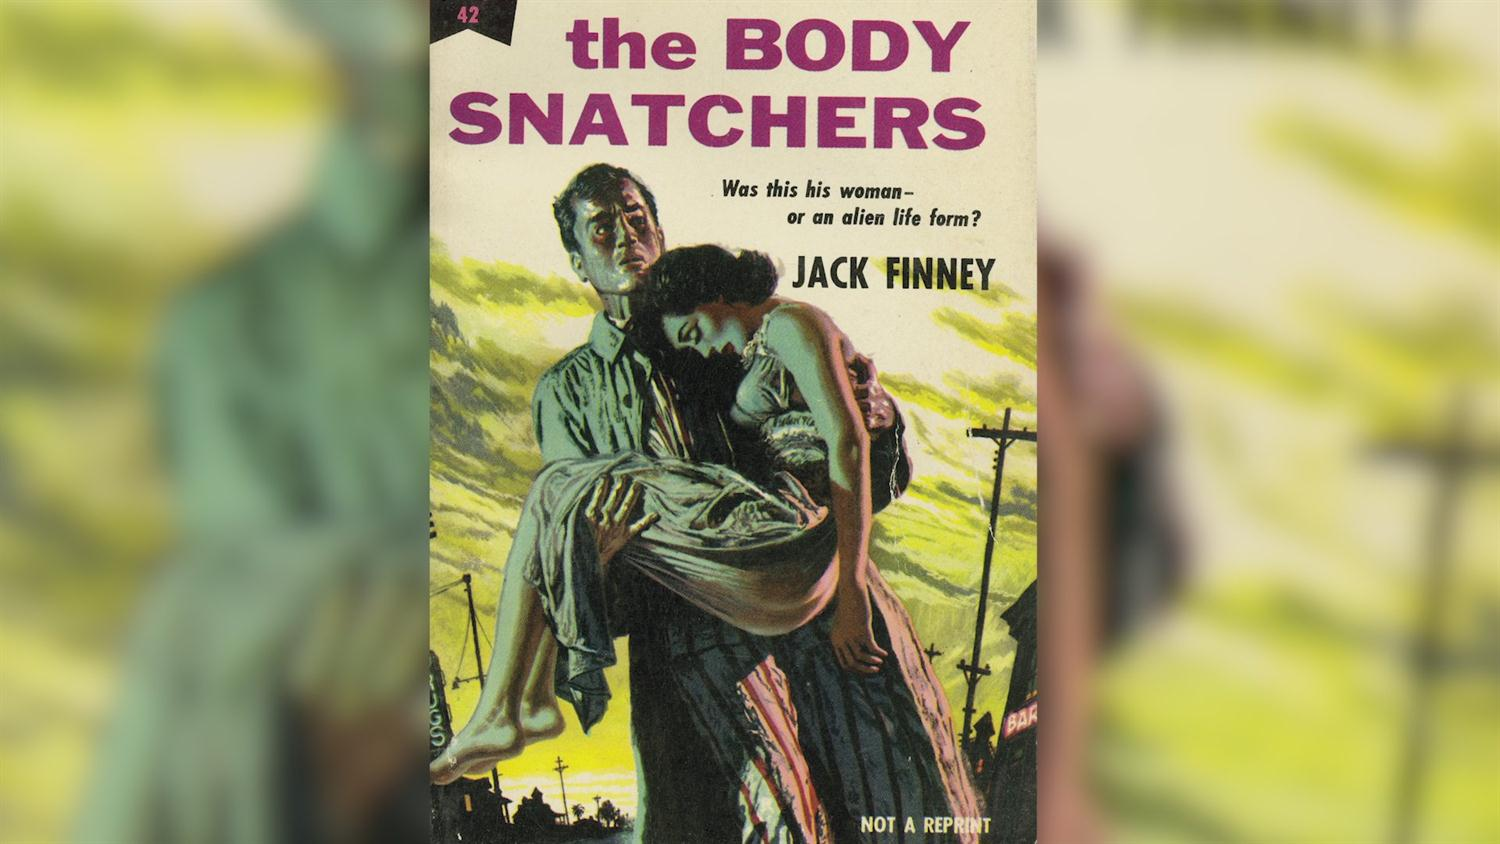 Ranking 7 Body Snatchers Movies